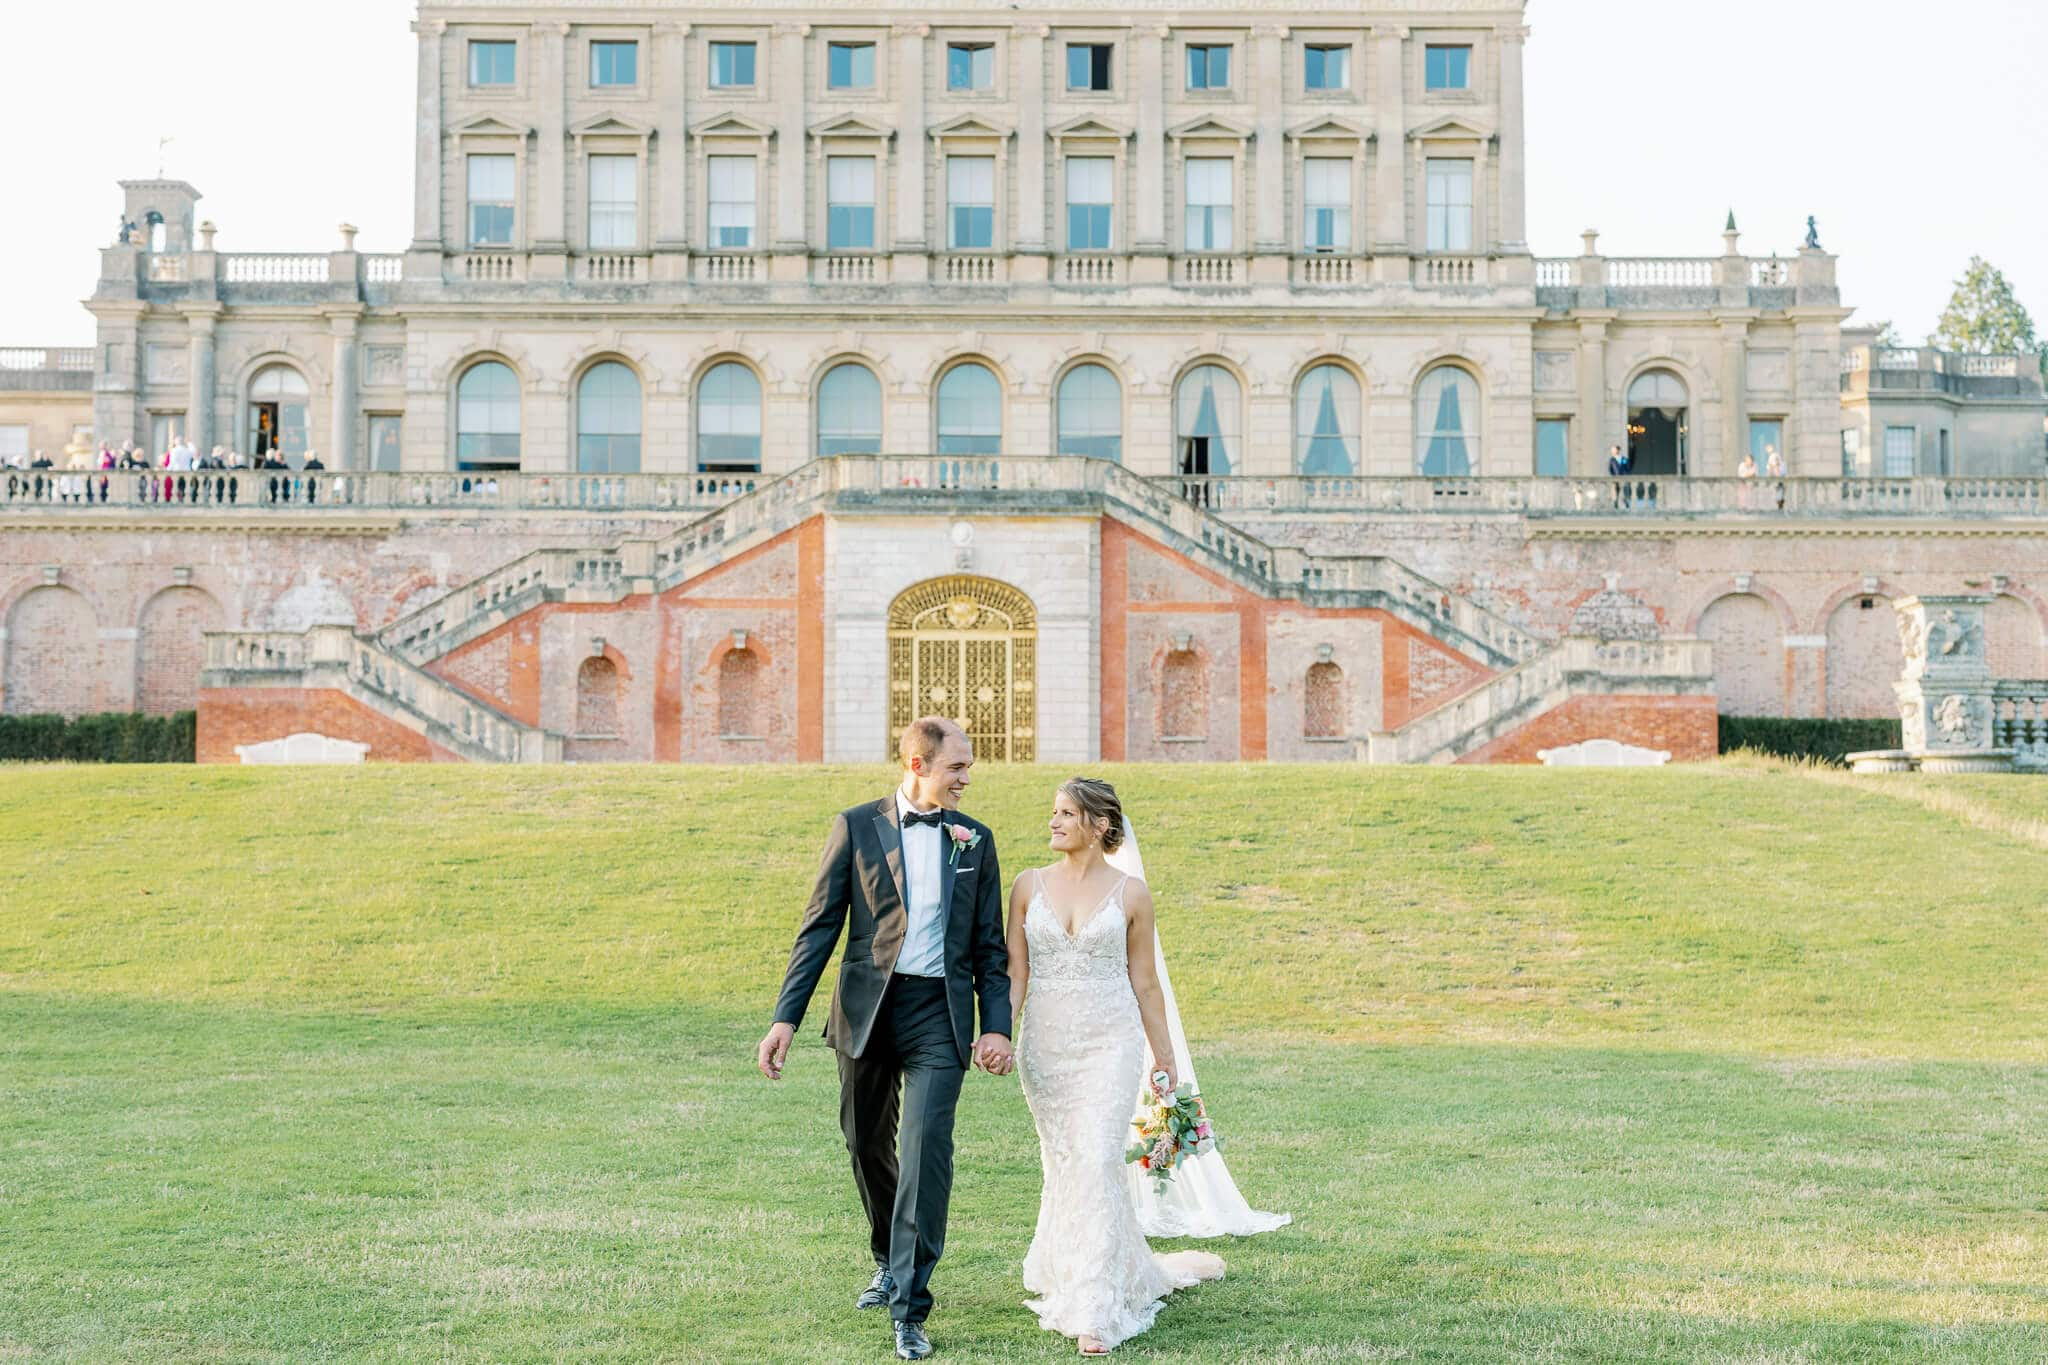 Cliveden House wedding photographer with couple and house in background